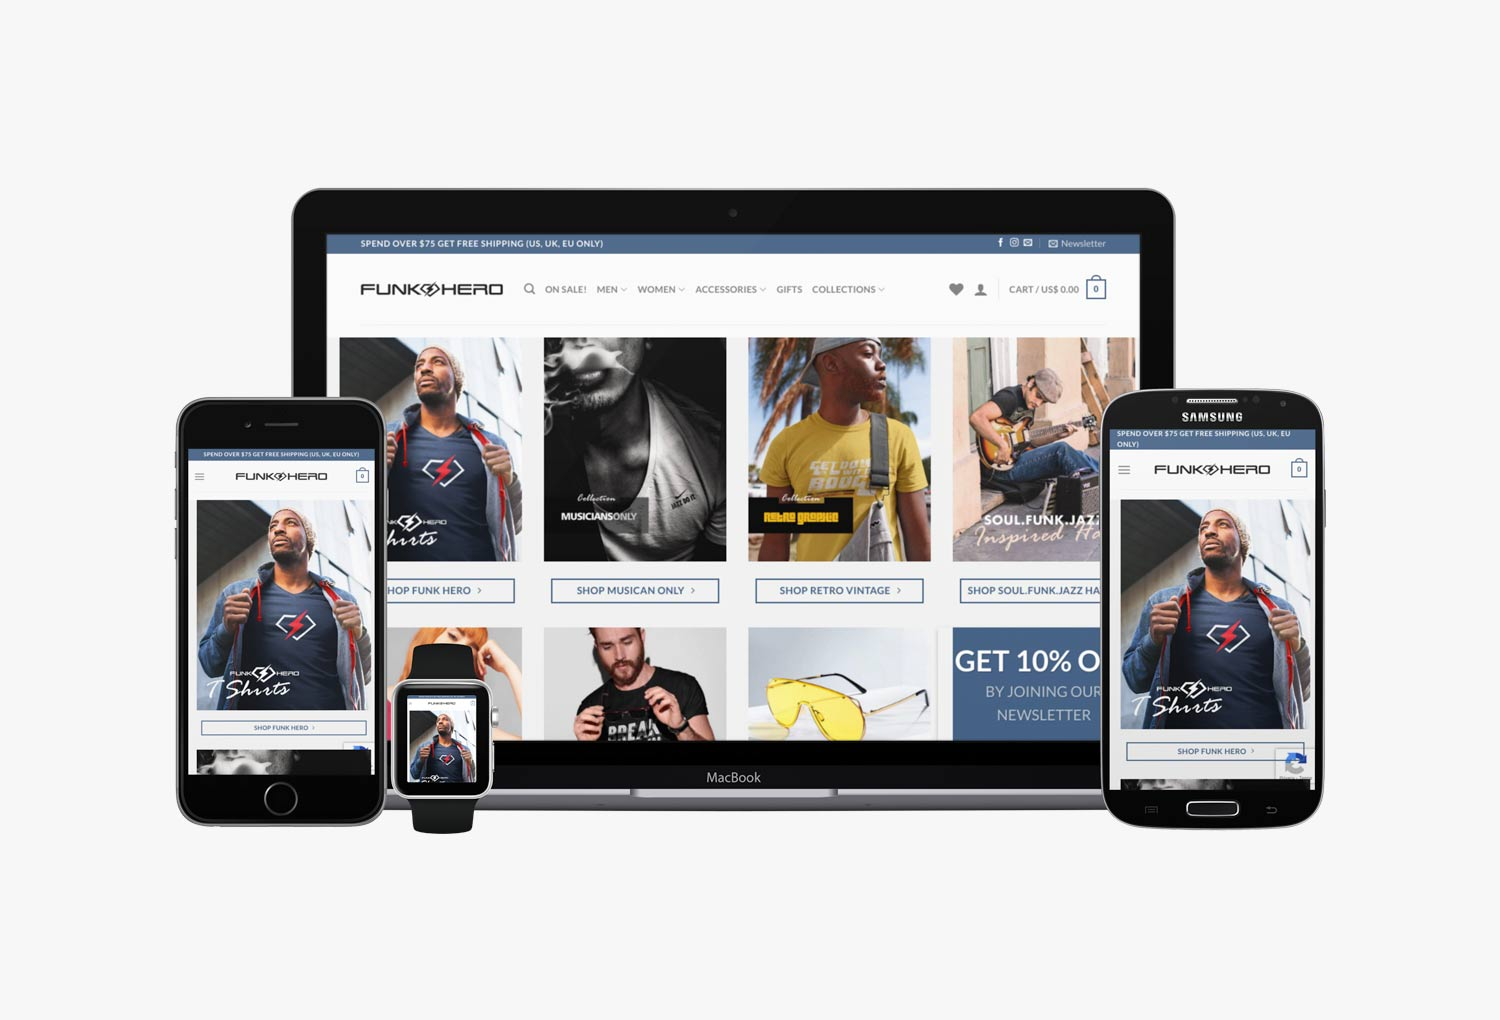 Funk Hero Fashion Online Store Home Page Website Design By Mango Tree Media